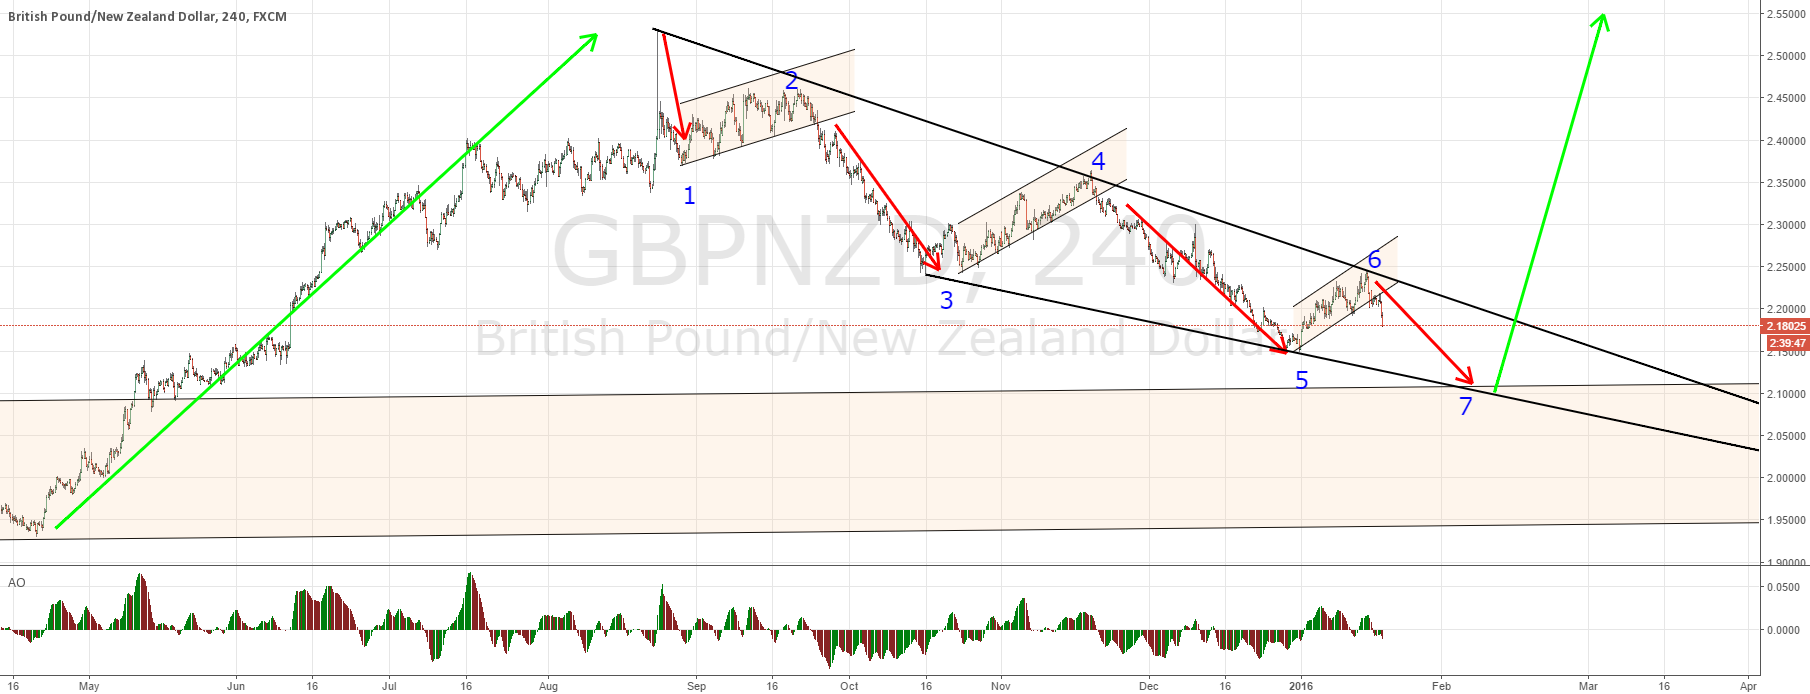 GBPNZD ending a major correction